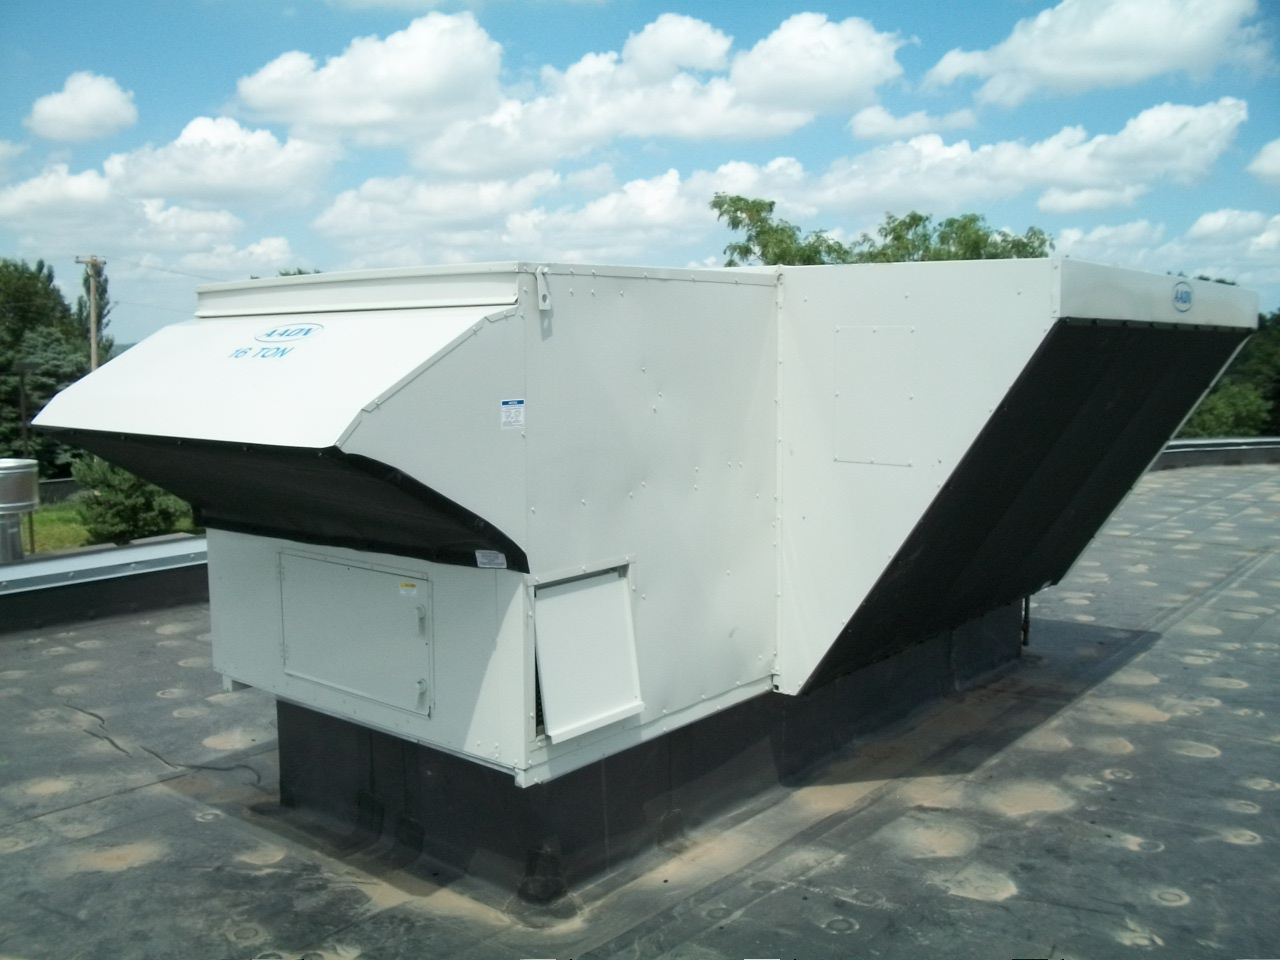 AHU Intake Screens (commonly called cottonwood filter screens, equipment protection pre-filters, ) are attached to the intake hoods to stop airborne debris at its point of entry - increasing the service life of internal filters by up to 60%